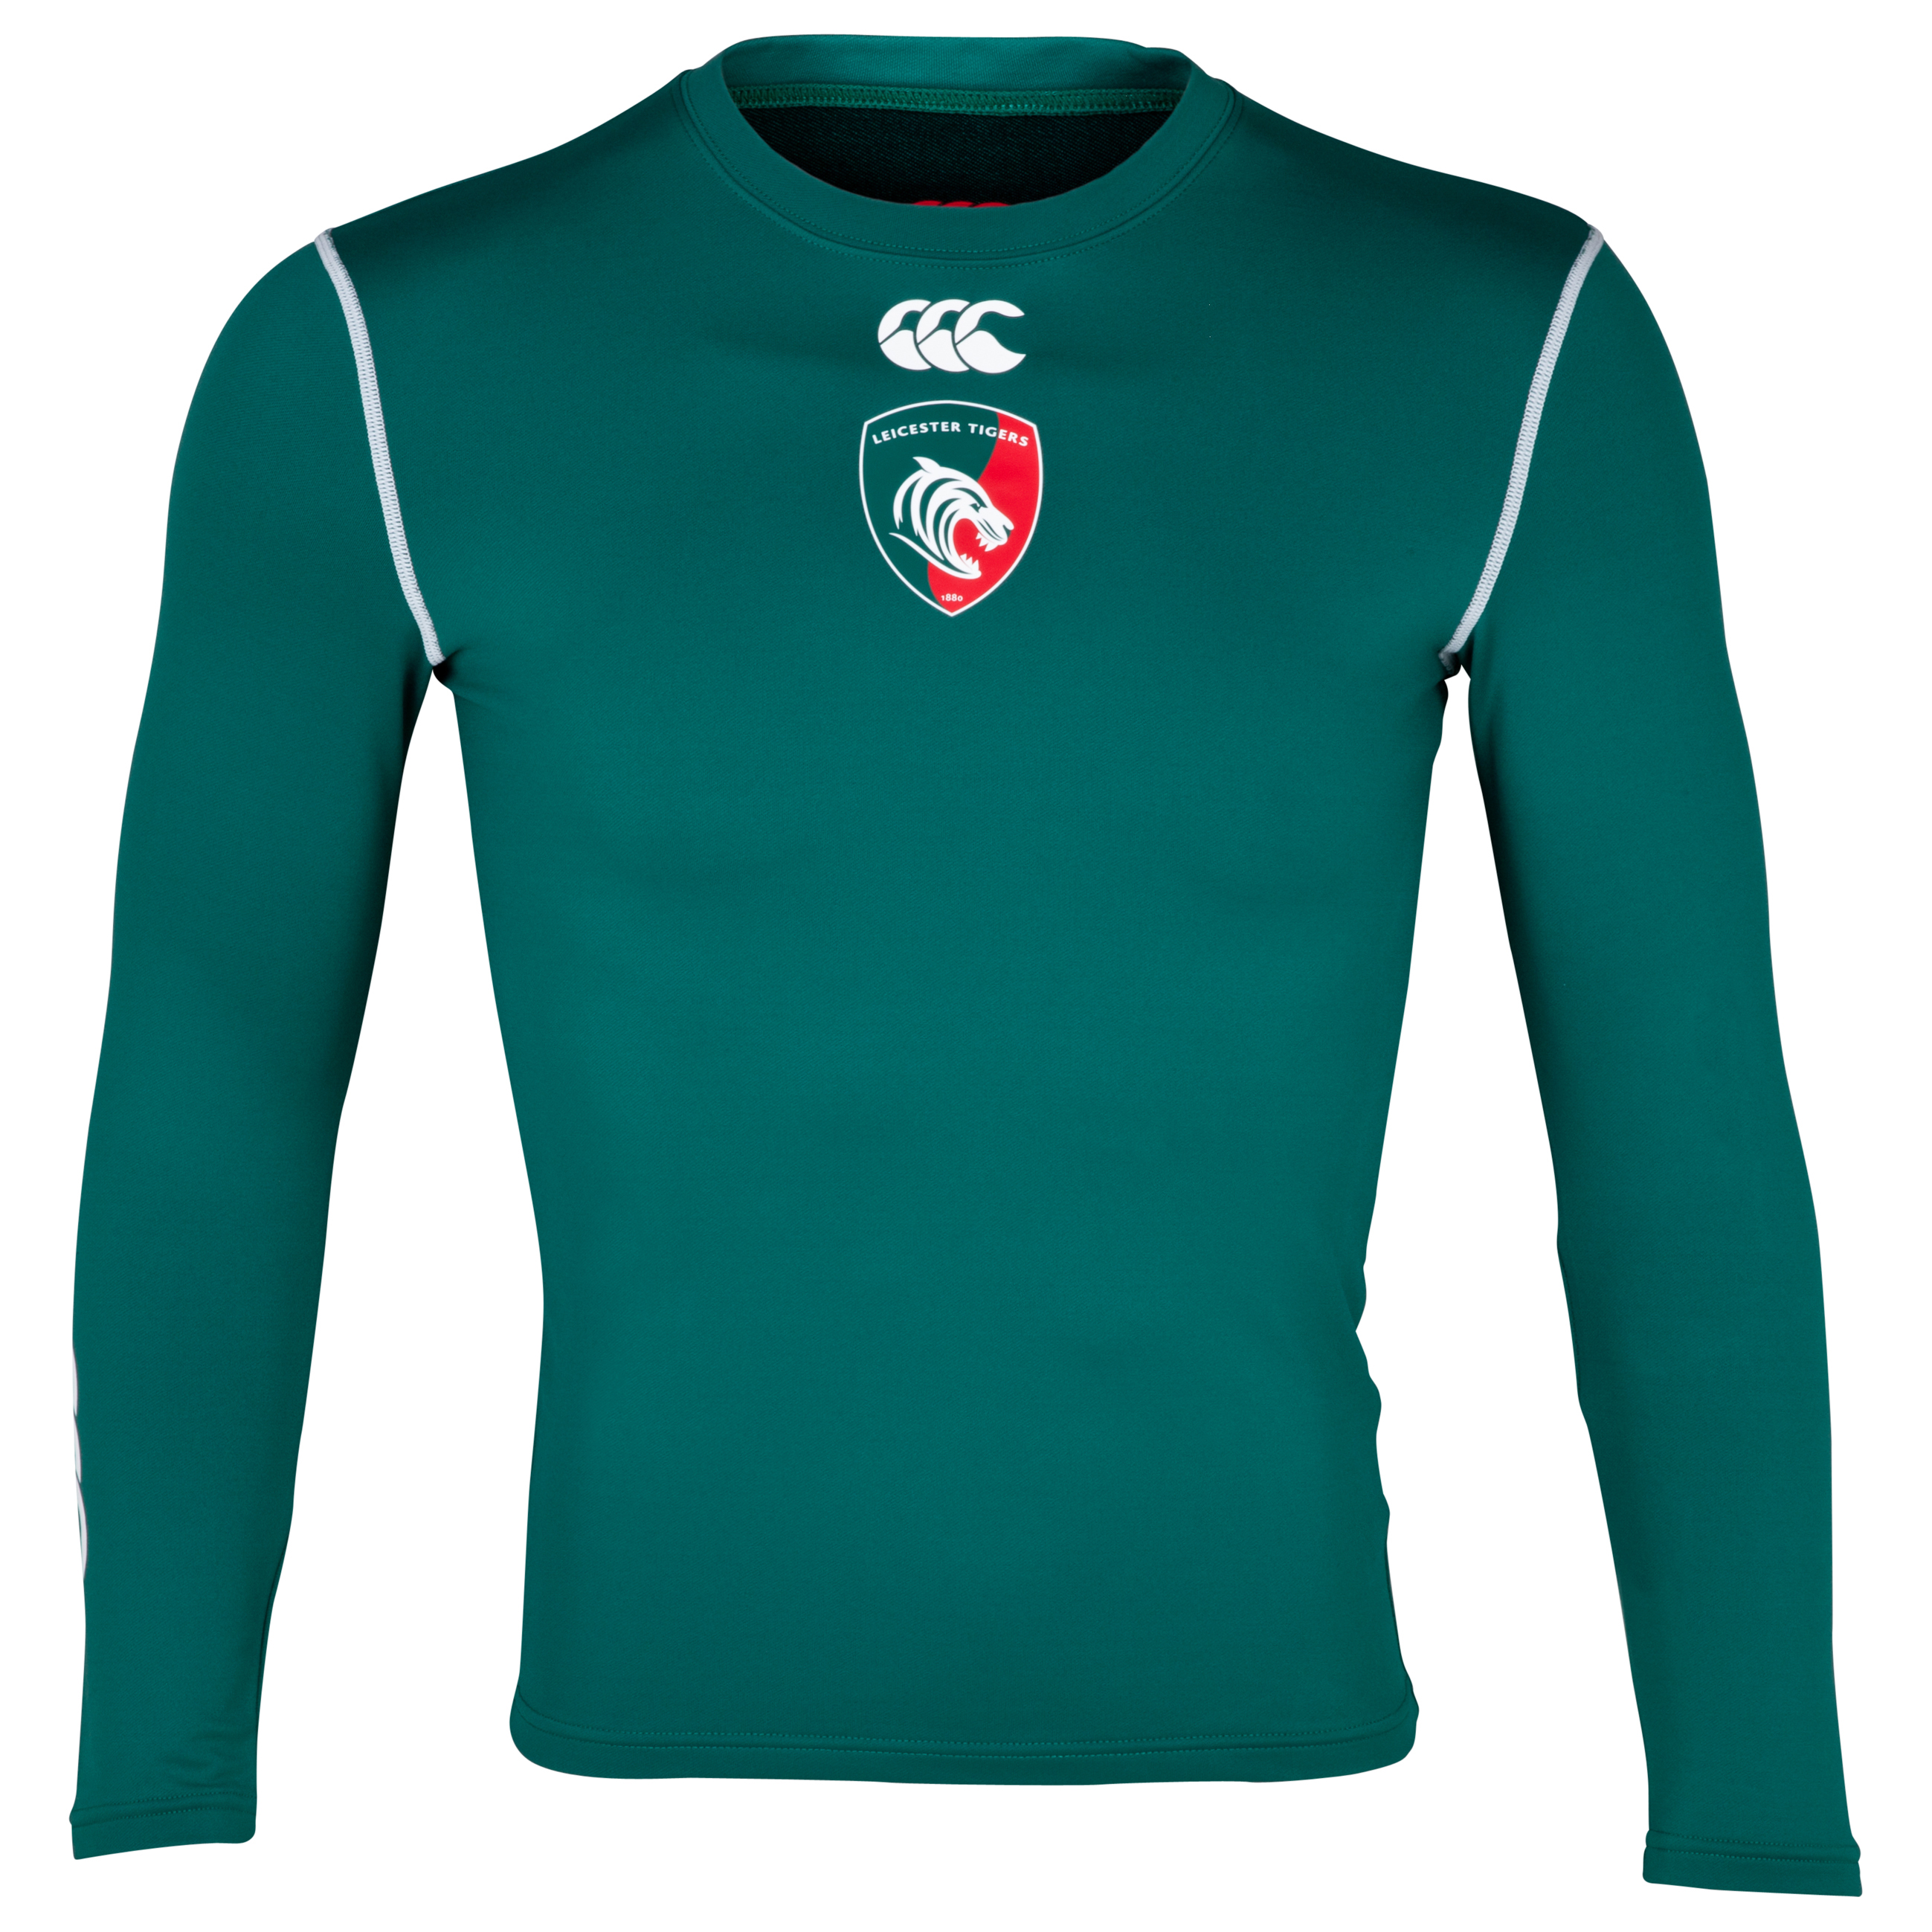 Leicester Tigers Home Cold Baselayer 2013/14 - Long Sleeved